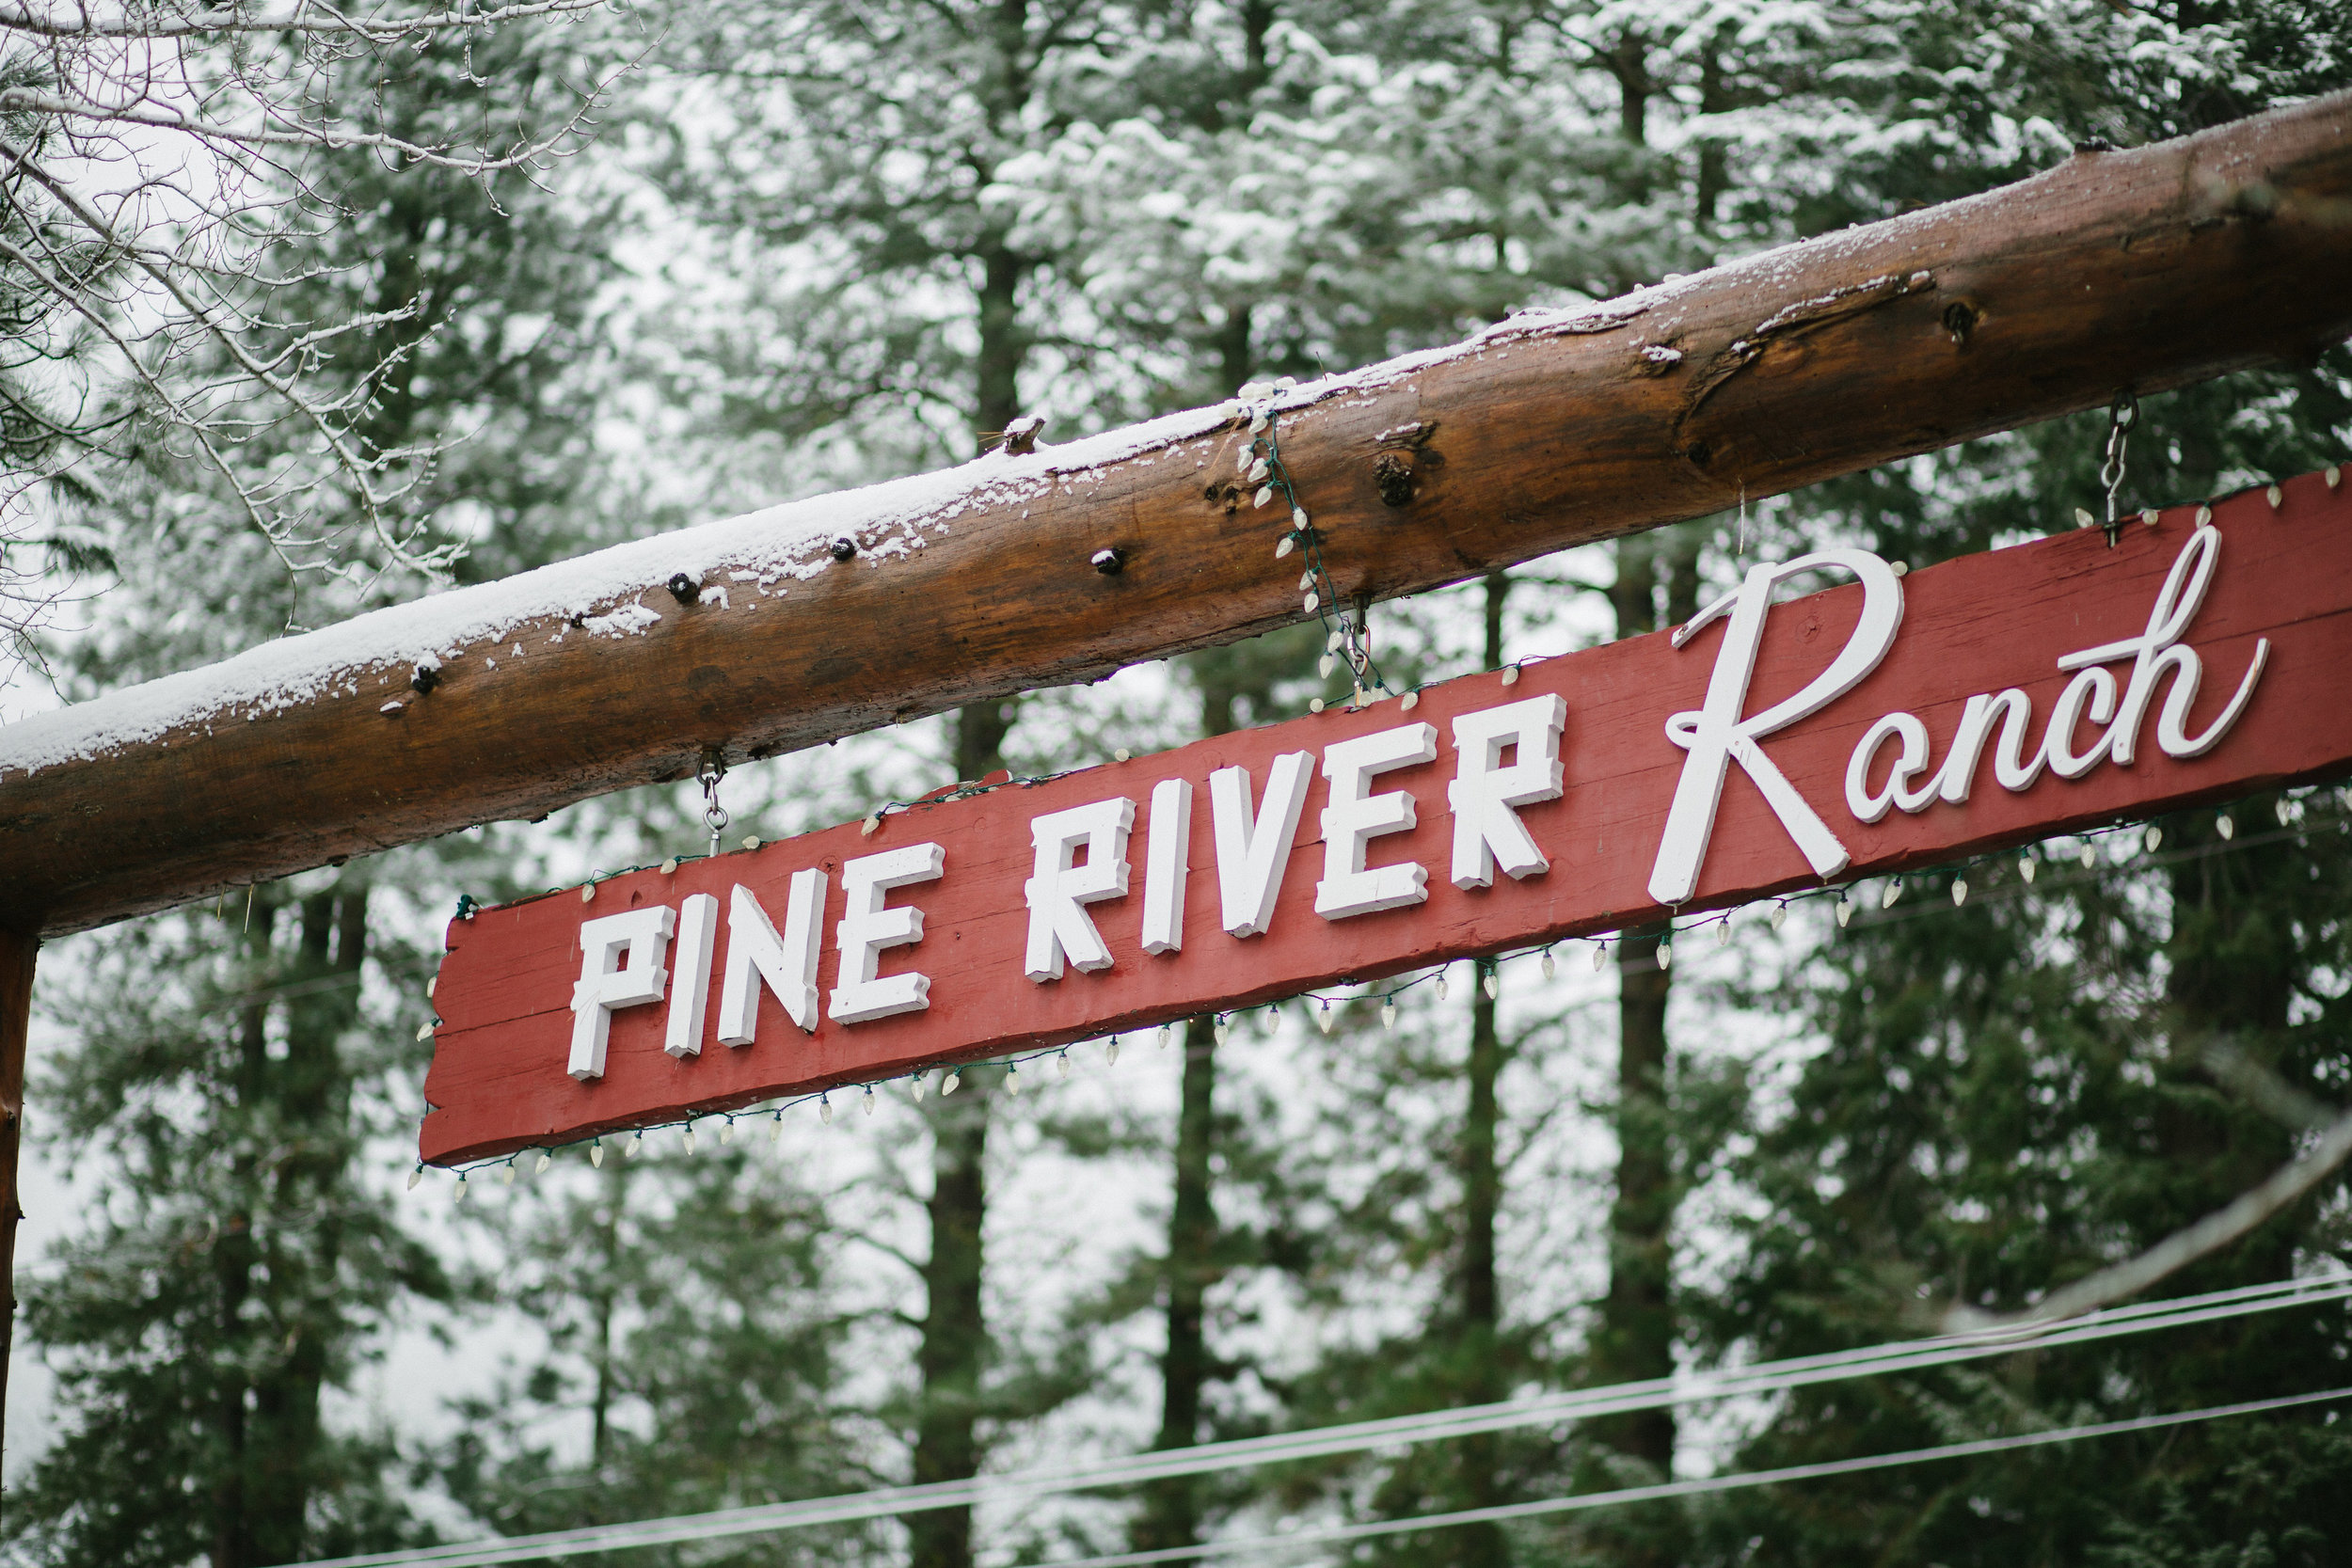 pine river ranch.jpg